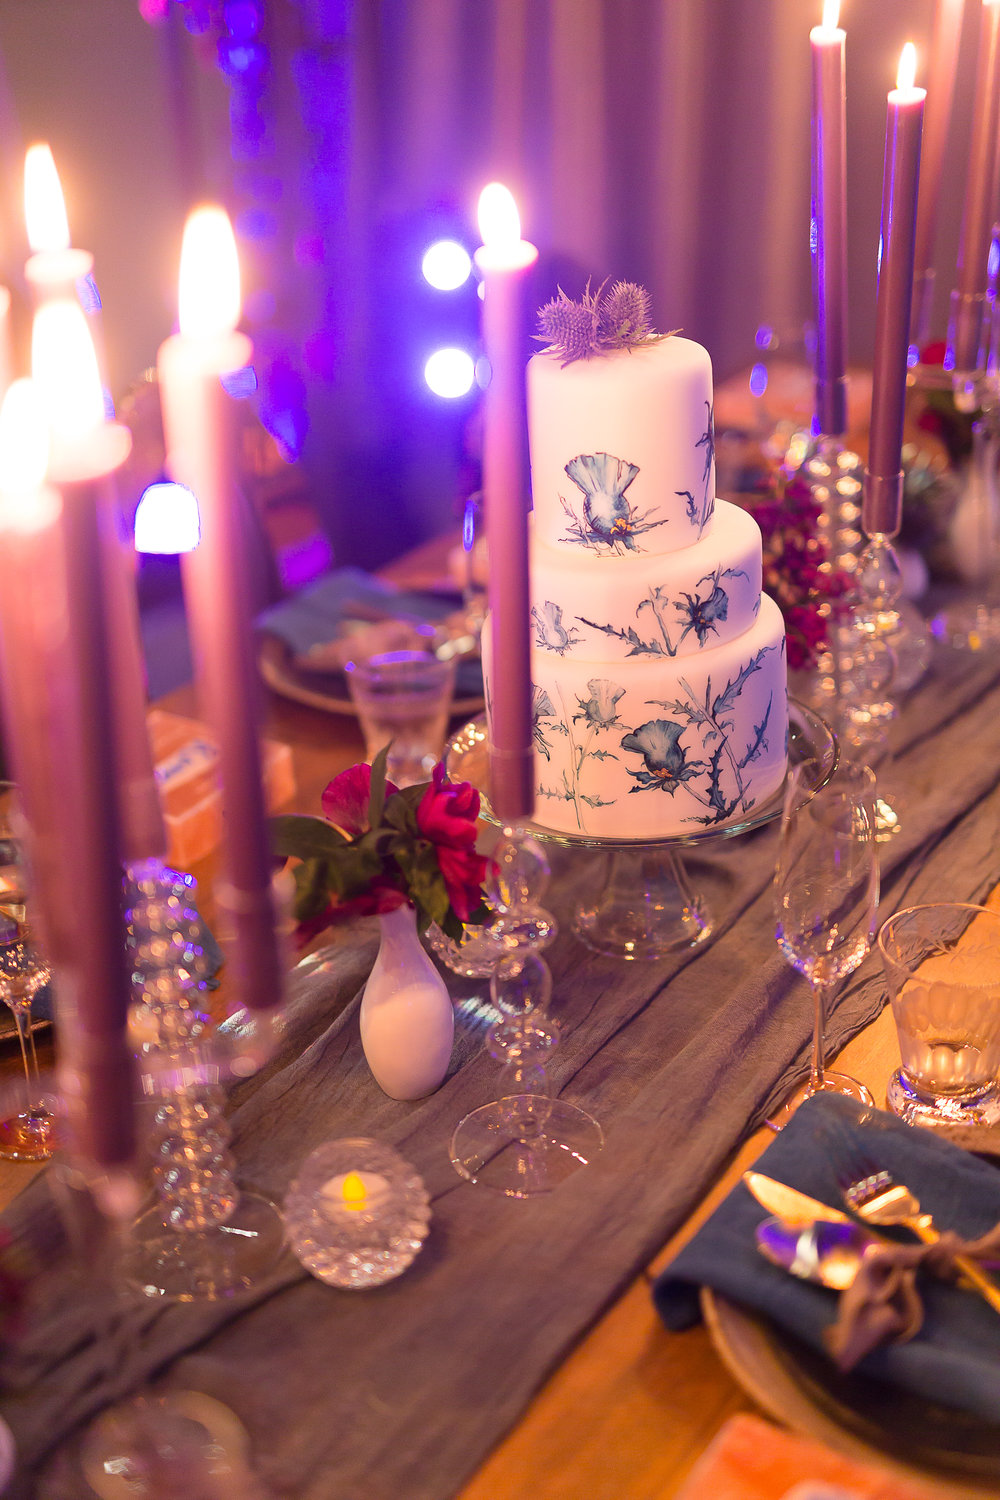 035-Chantal-Events-Space&Details.jpg